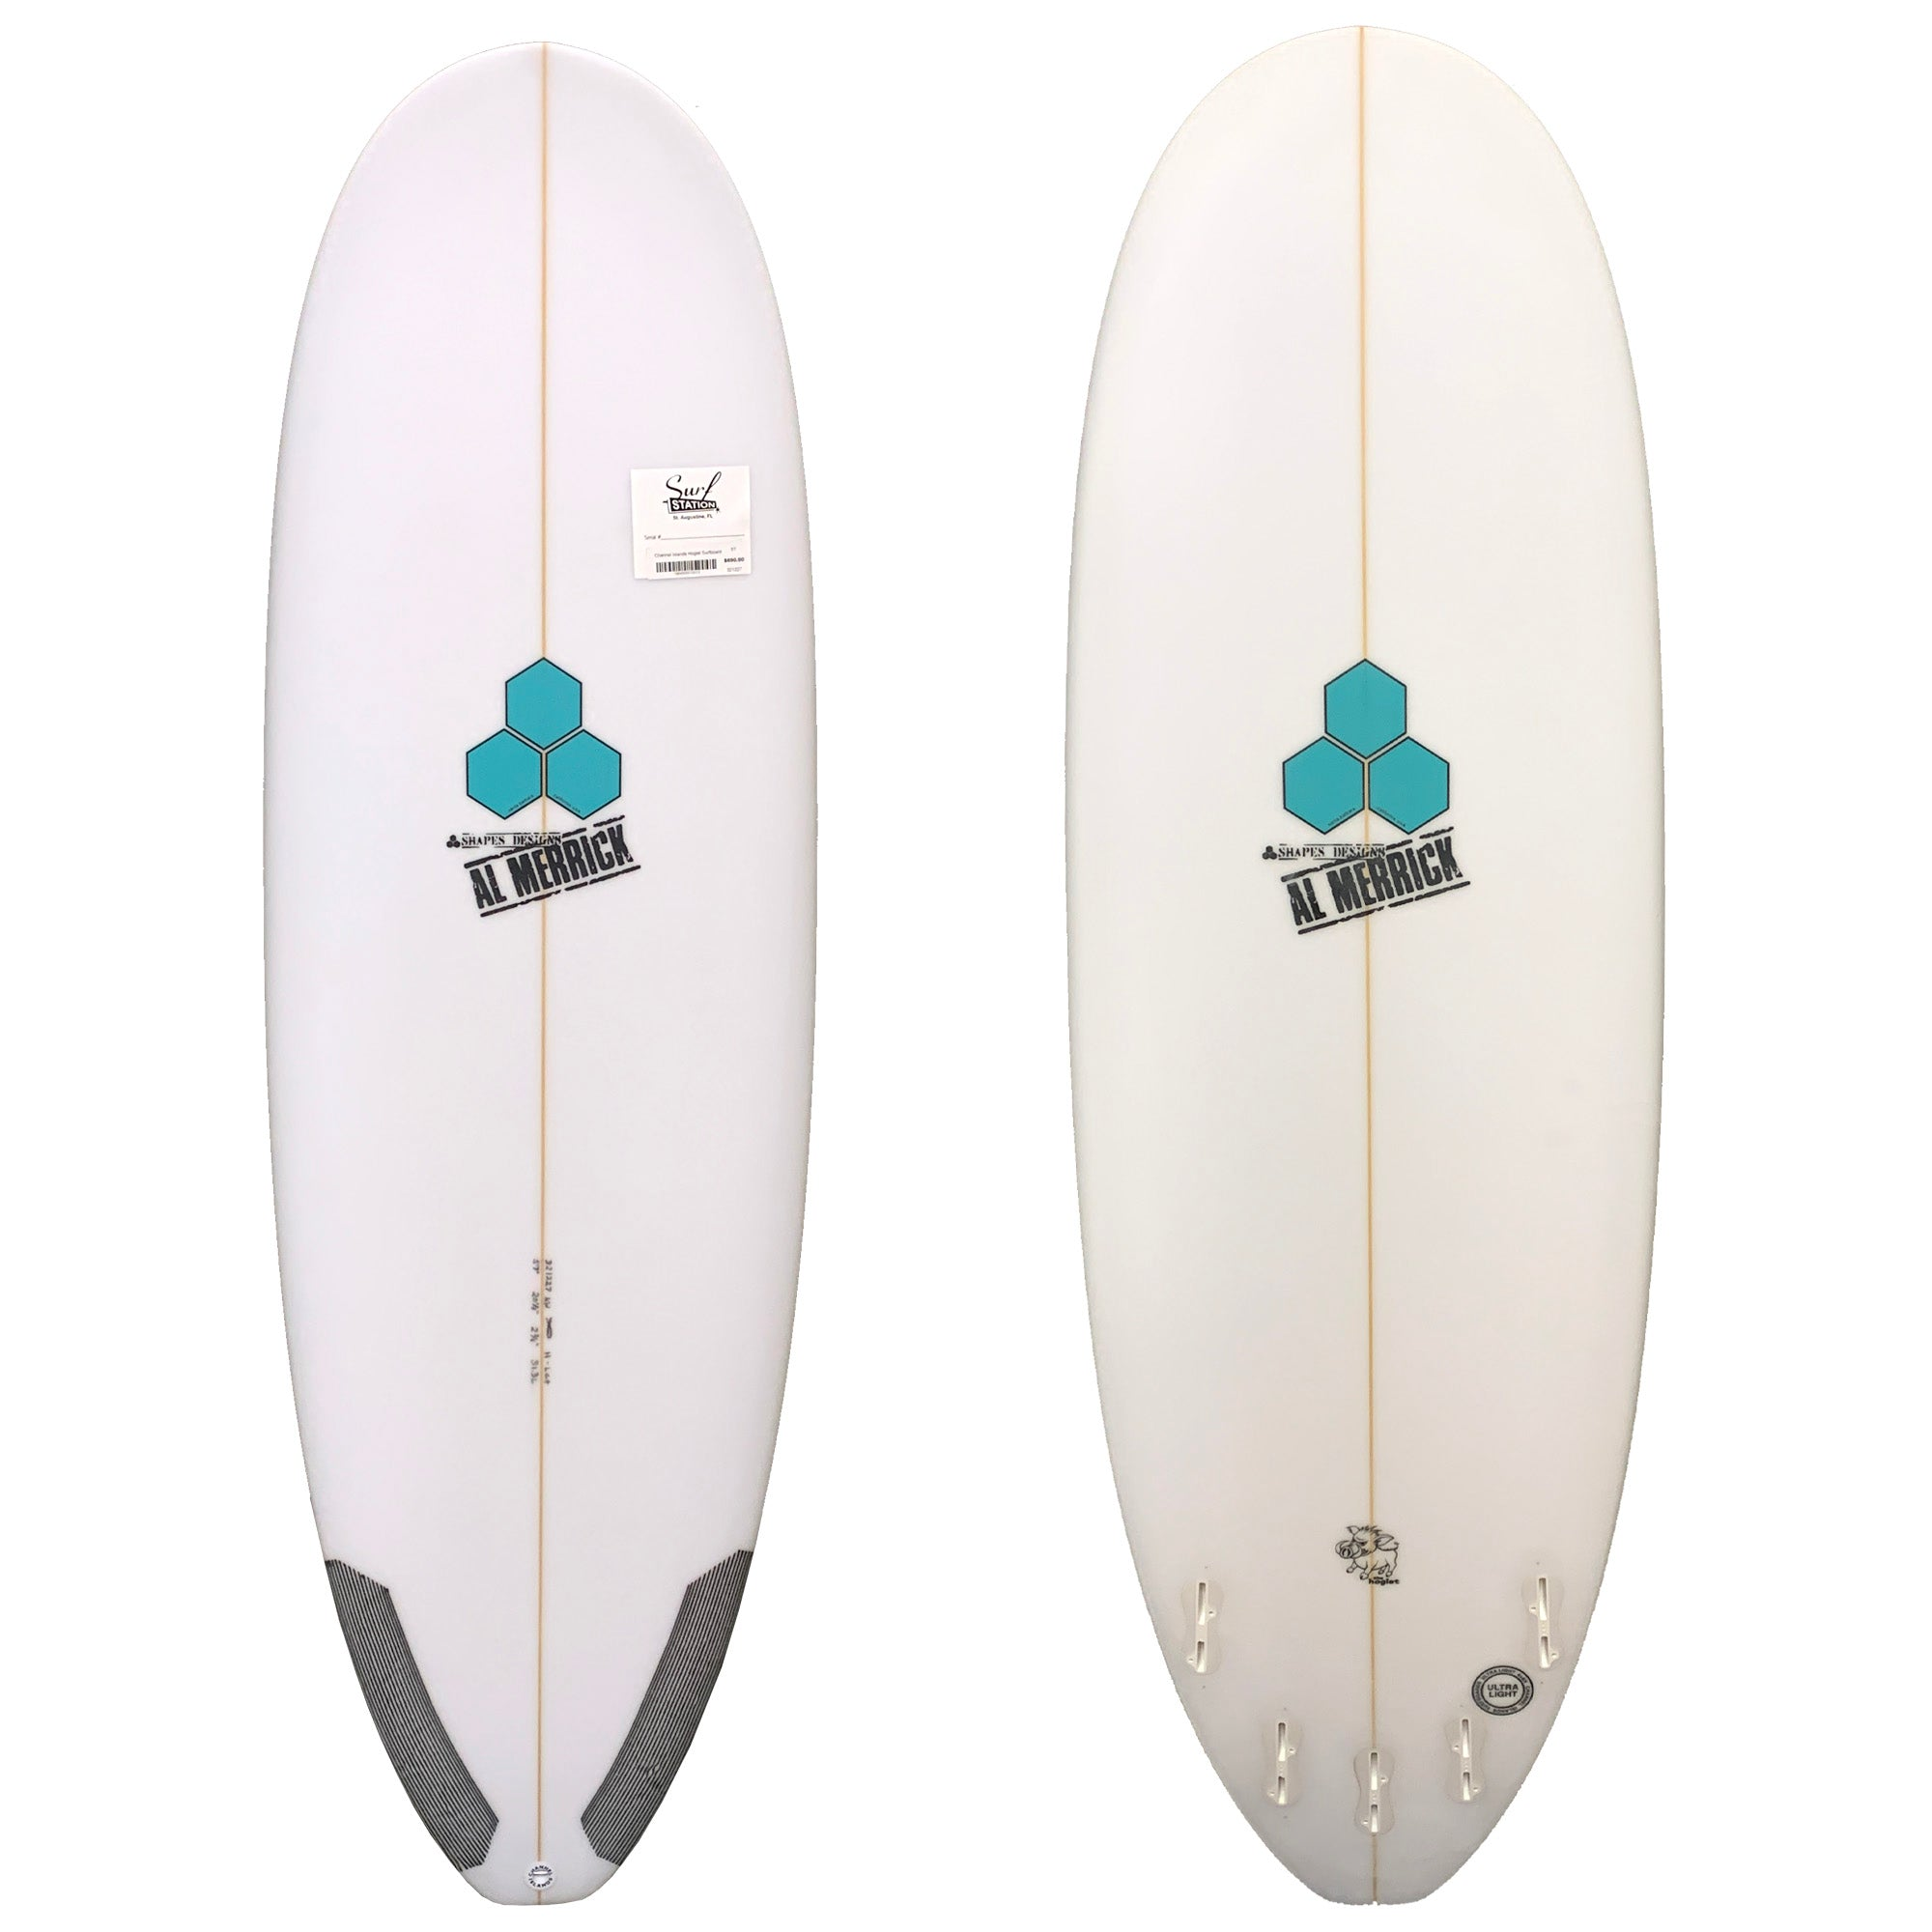 Channel Islands Hoglet Surfboard - FCS II